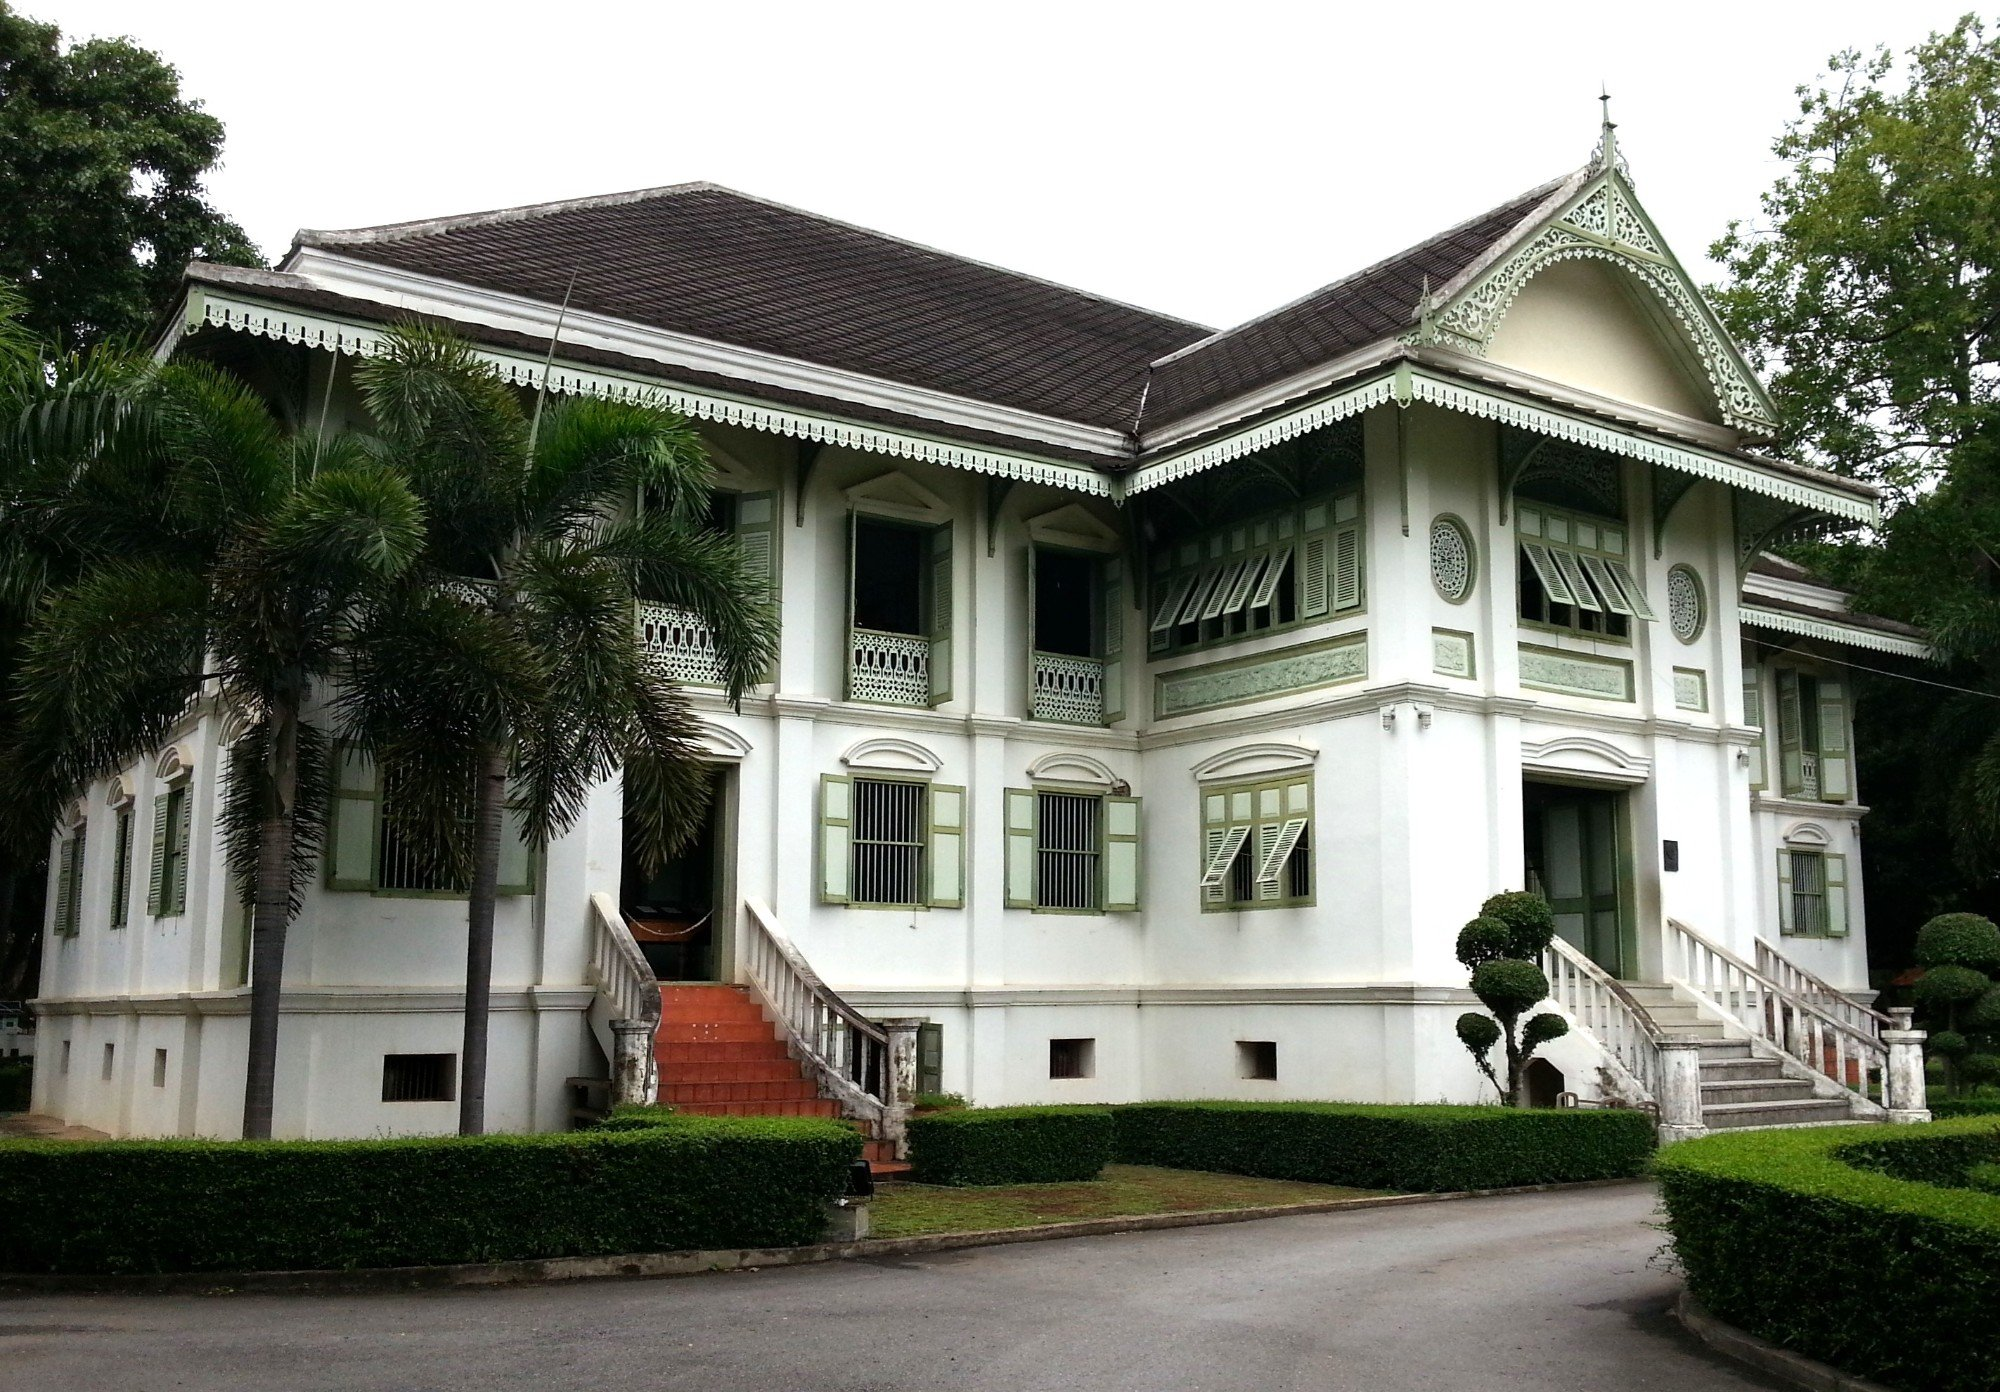 Khum Chao Luang Museum in Phrae